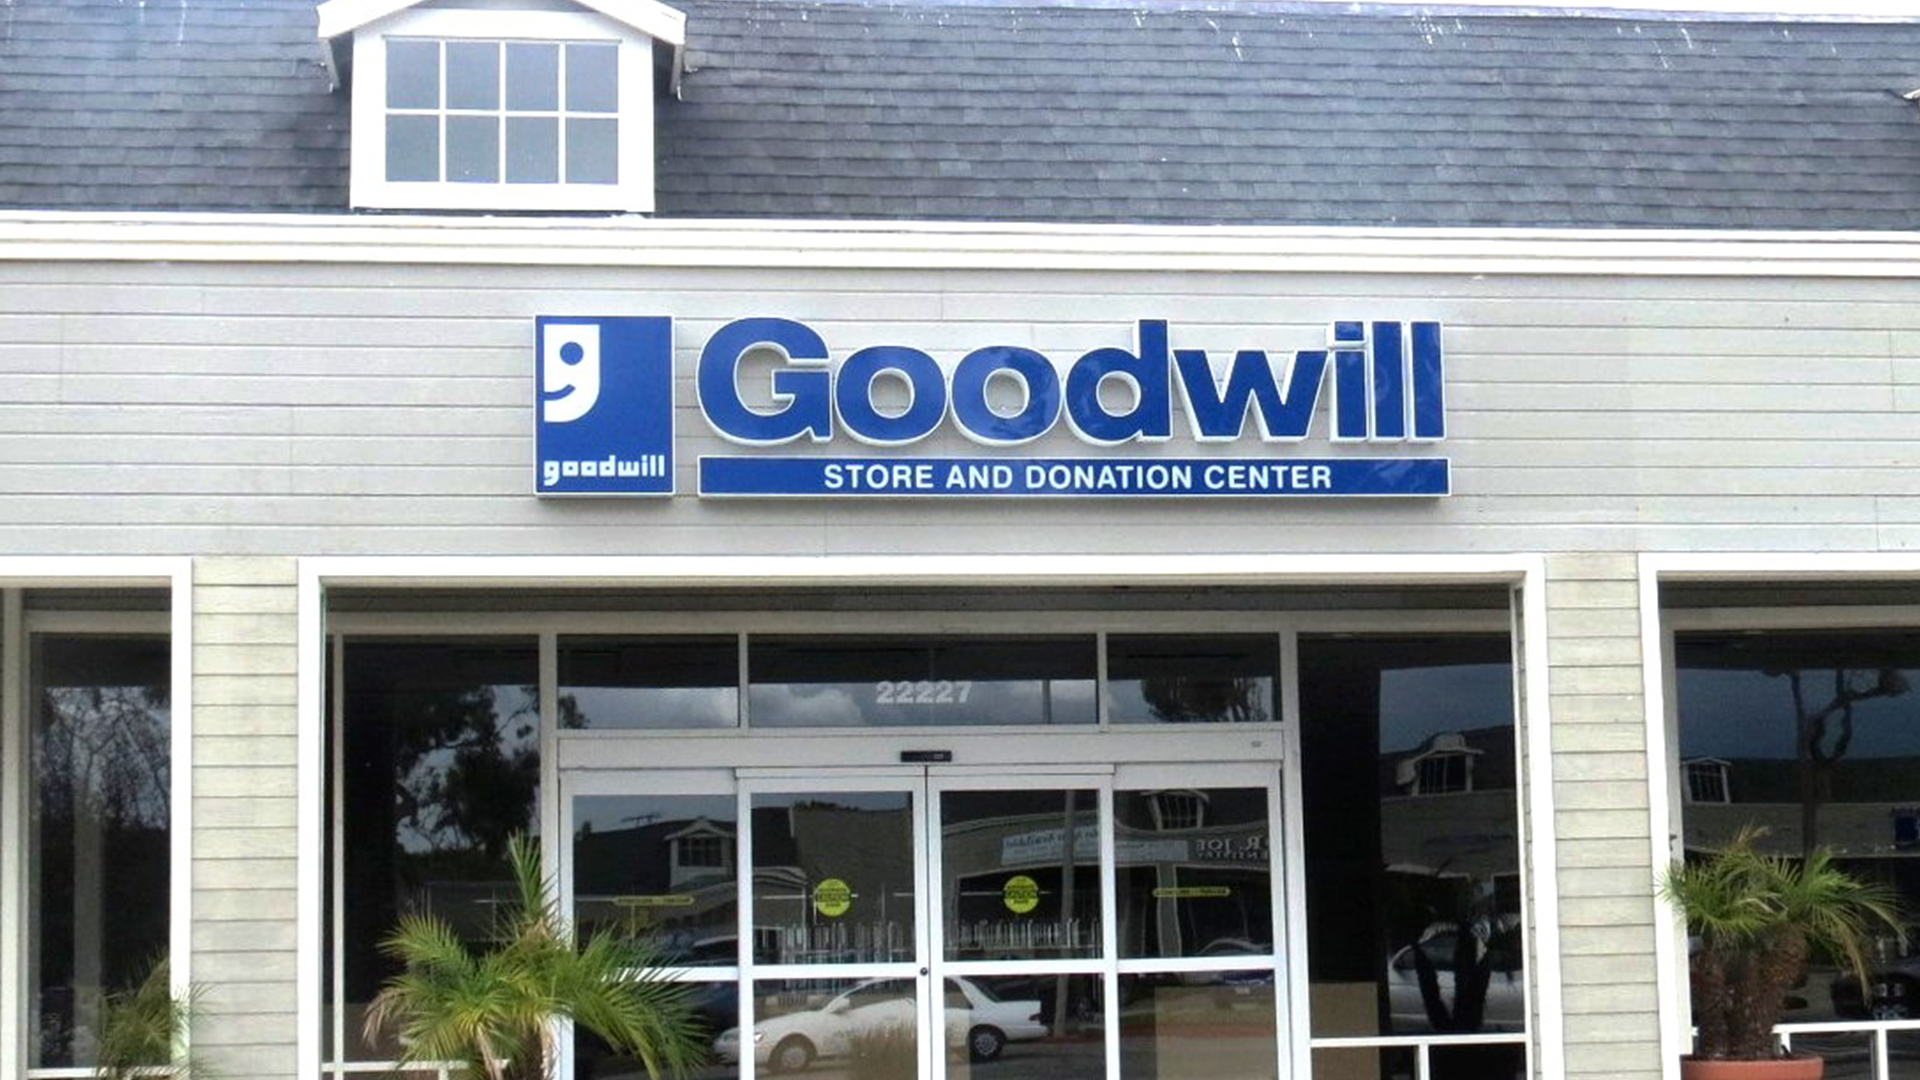 Torrance Goodwill Store & Donation Center